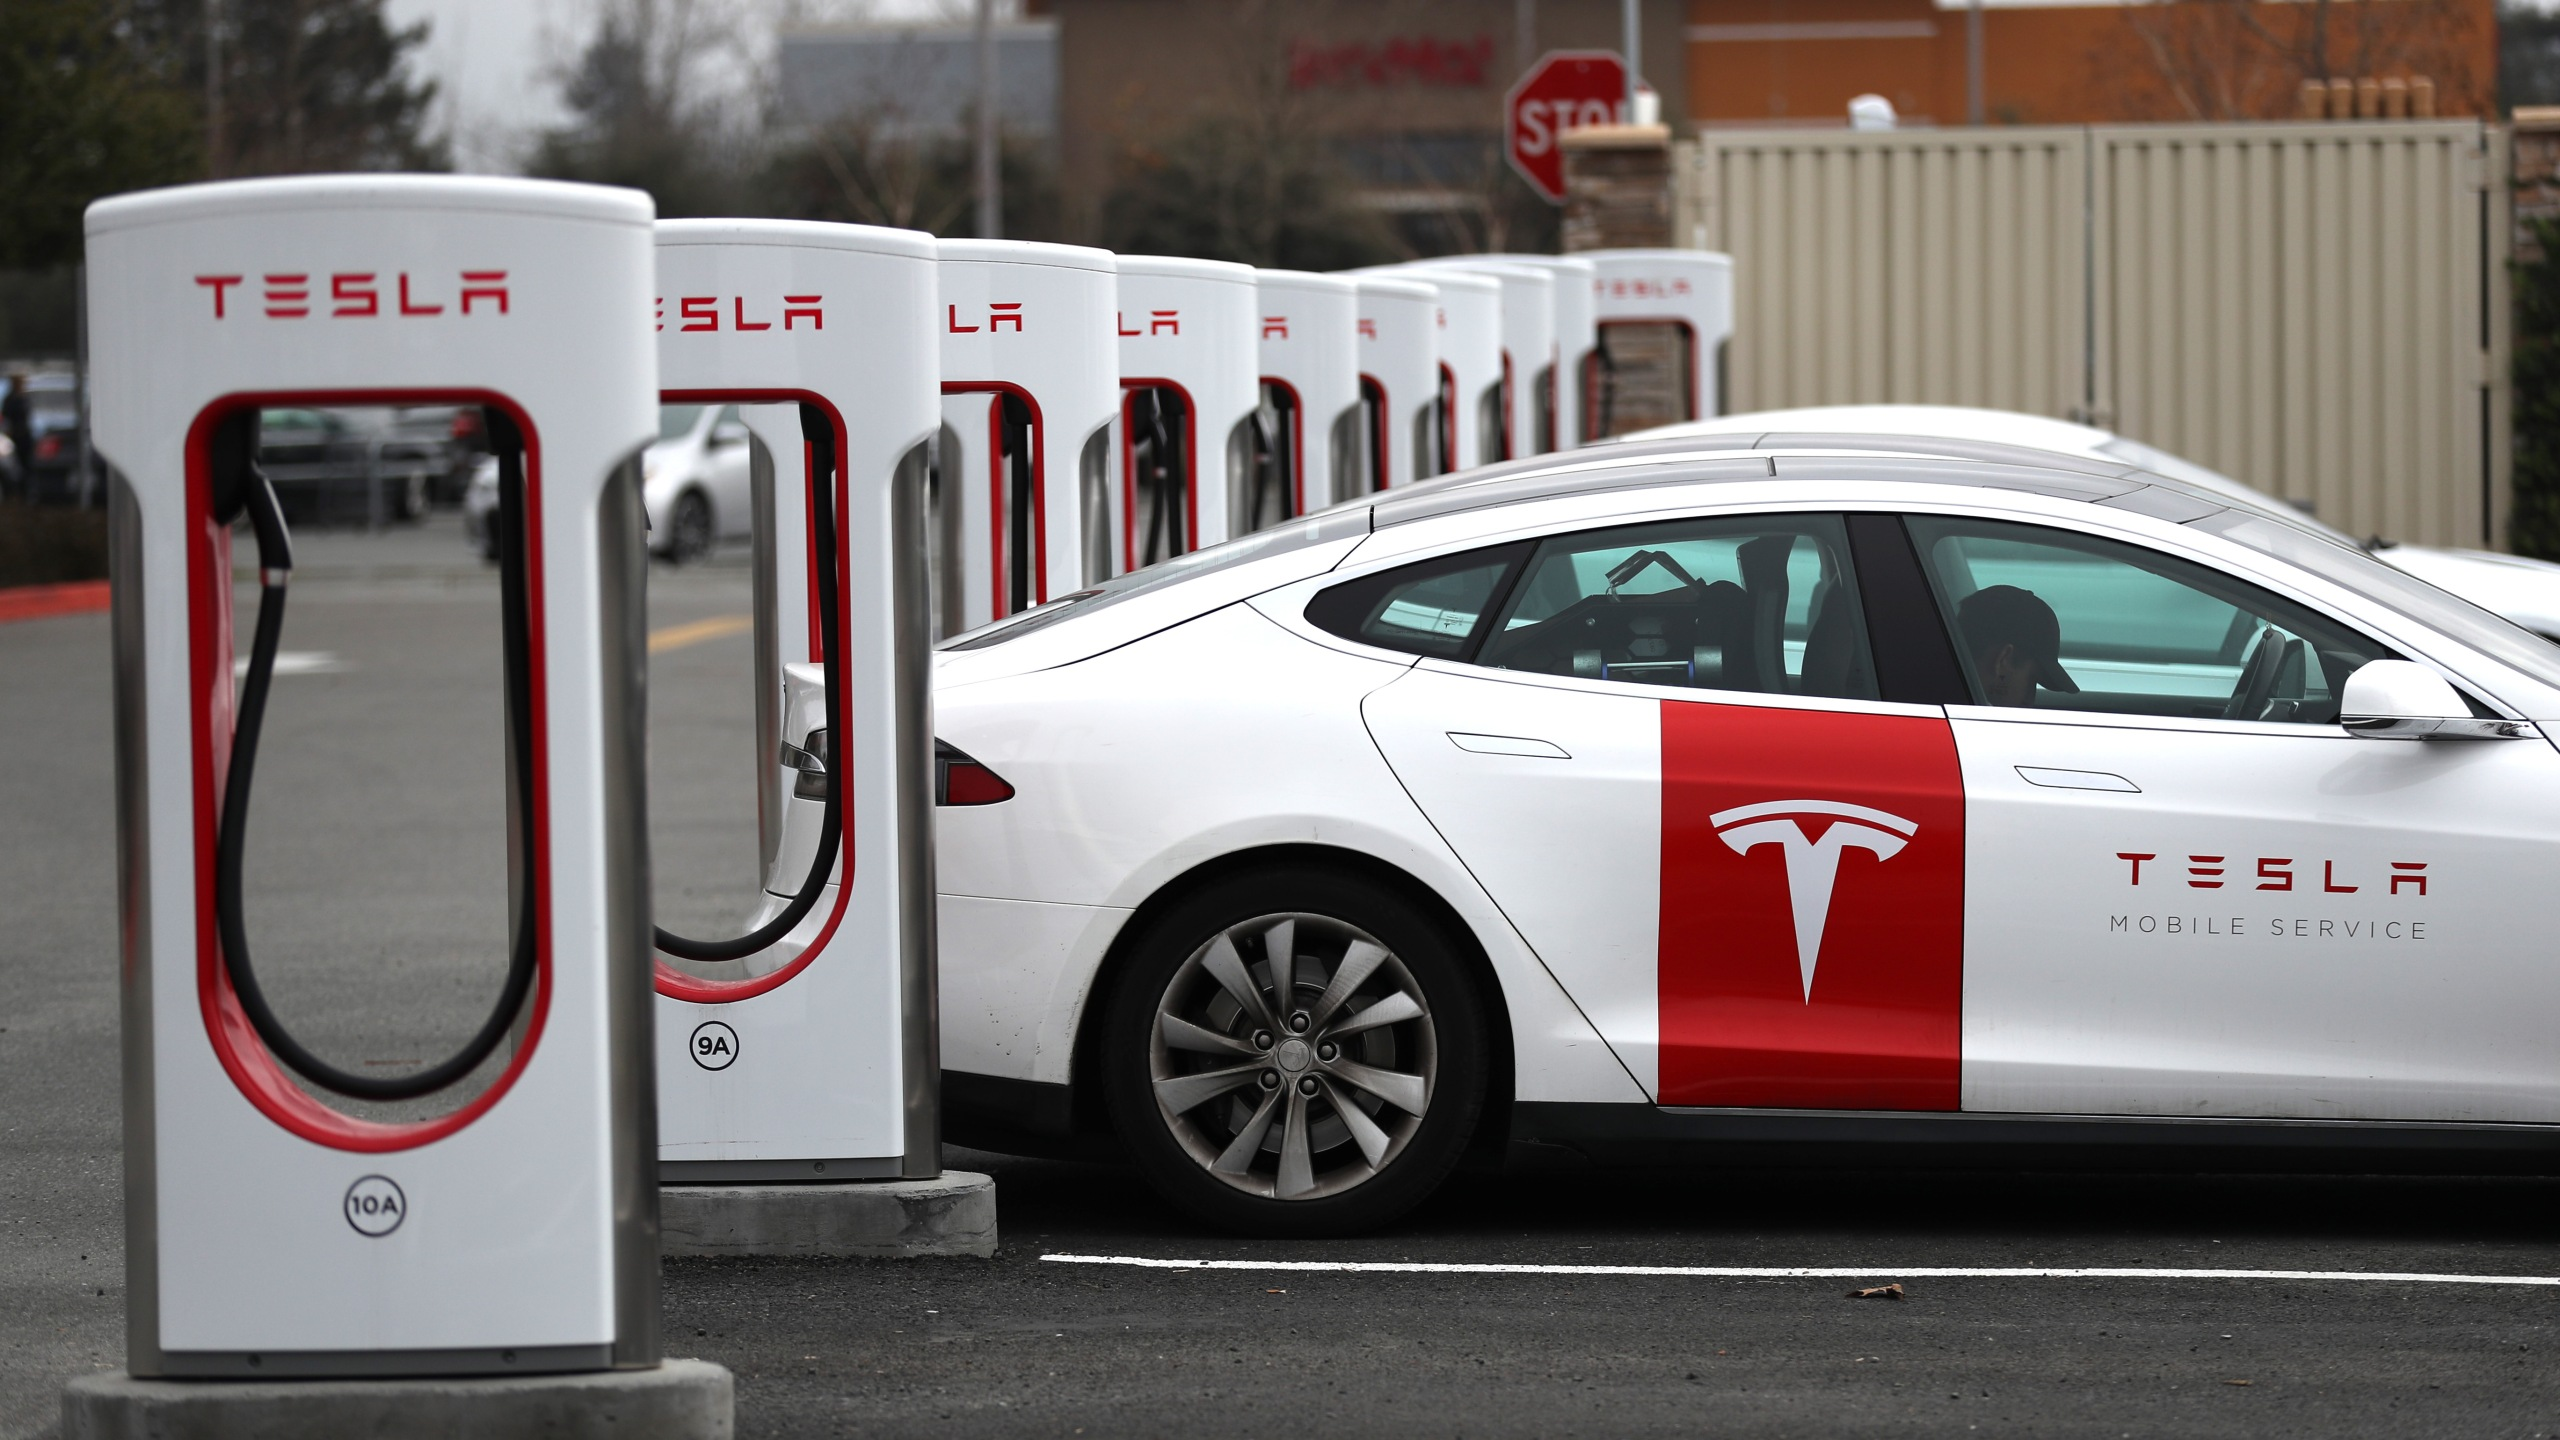 Tesla cars recharge at a Tesla Supercharger facility on January 30, 2019 in Petaluma, California. (Credit: Justin Sullivan/Getty Images)